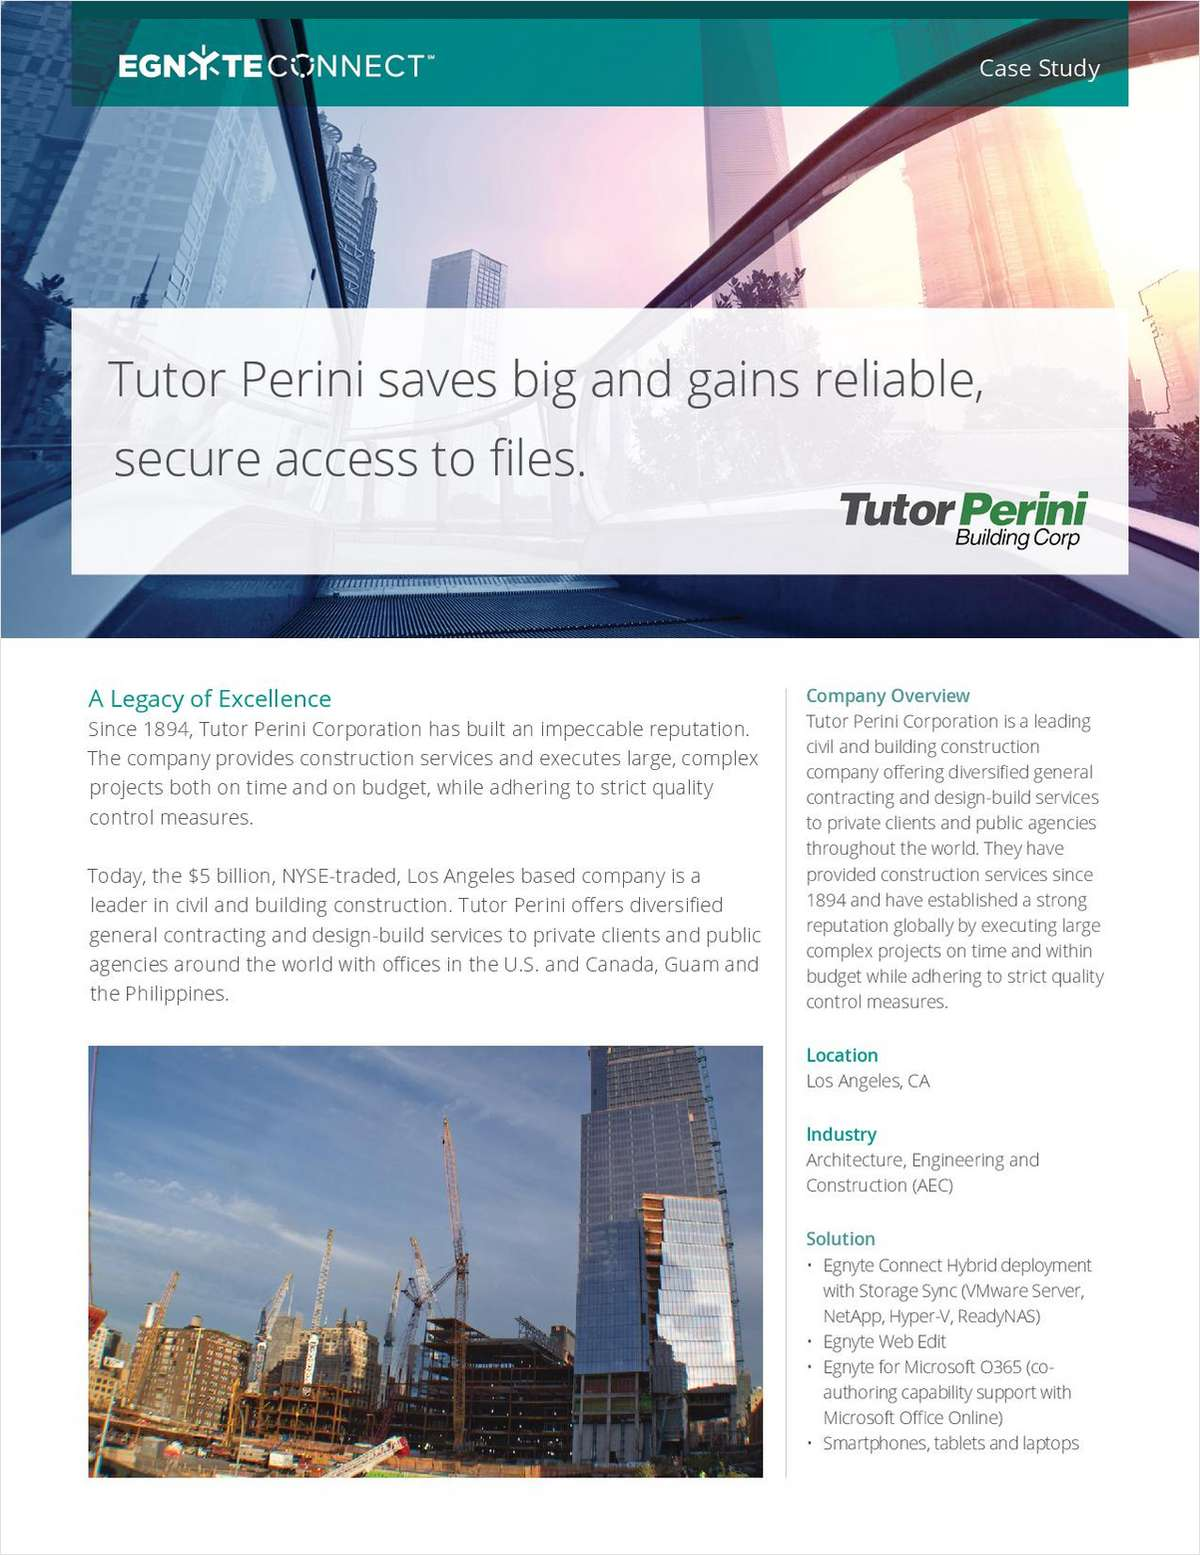 Tutor Perini Saves Big and Gains Reliable, Secure Access to Files